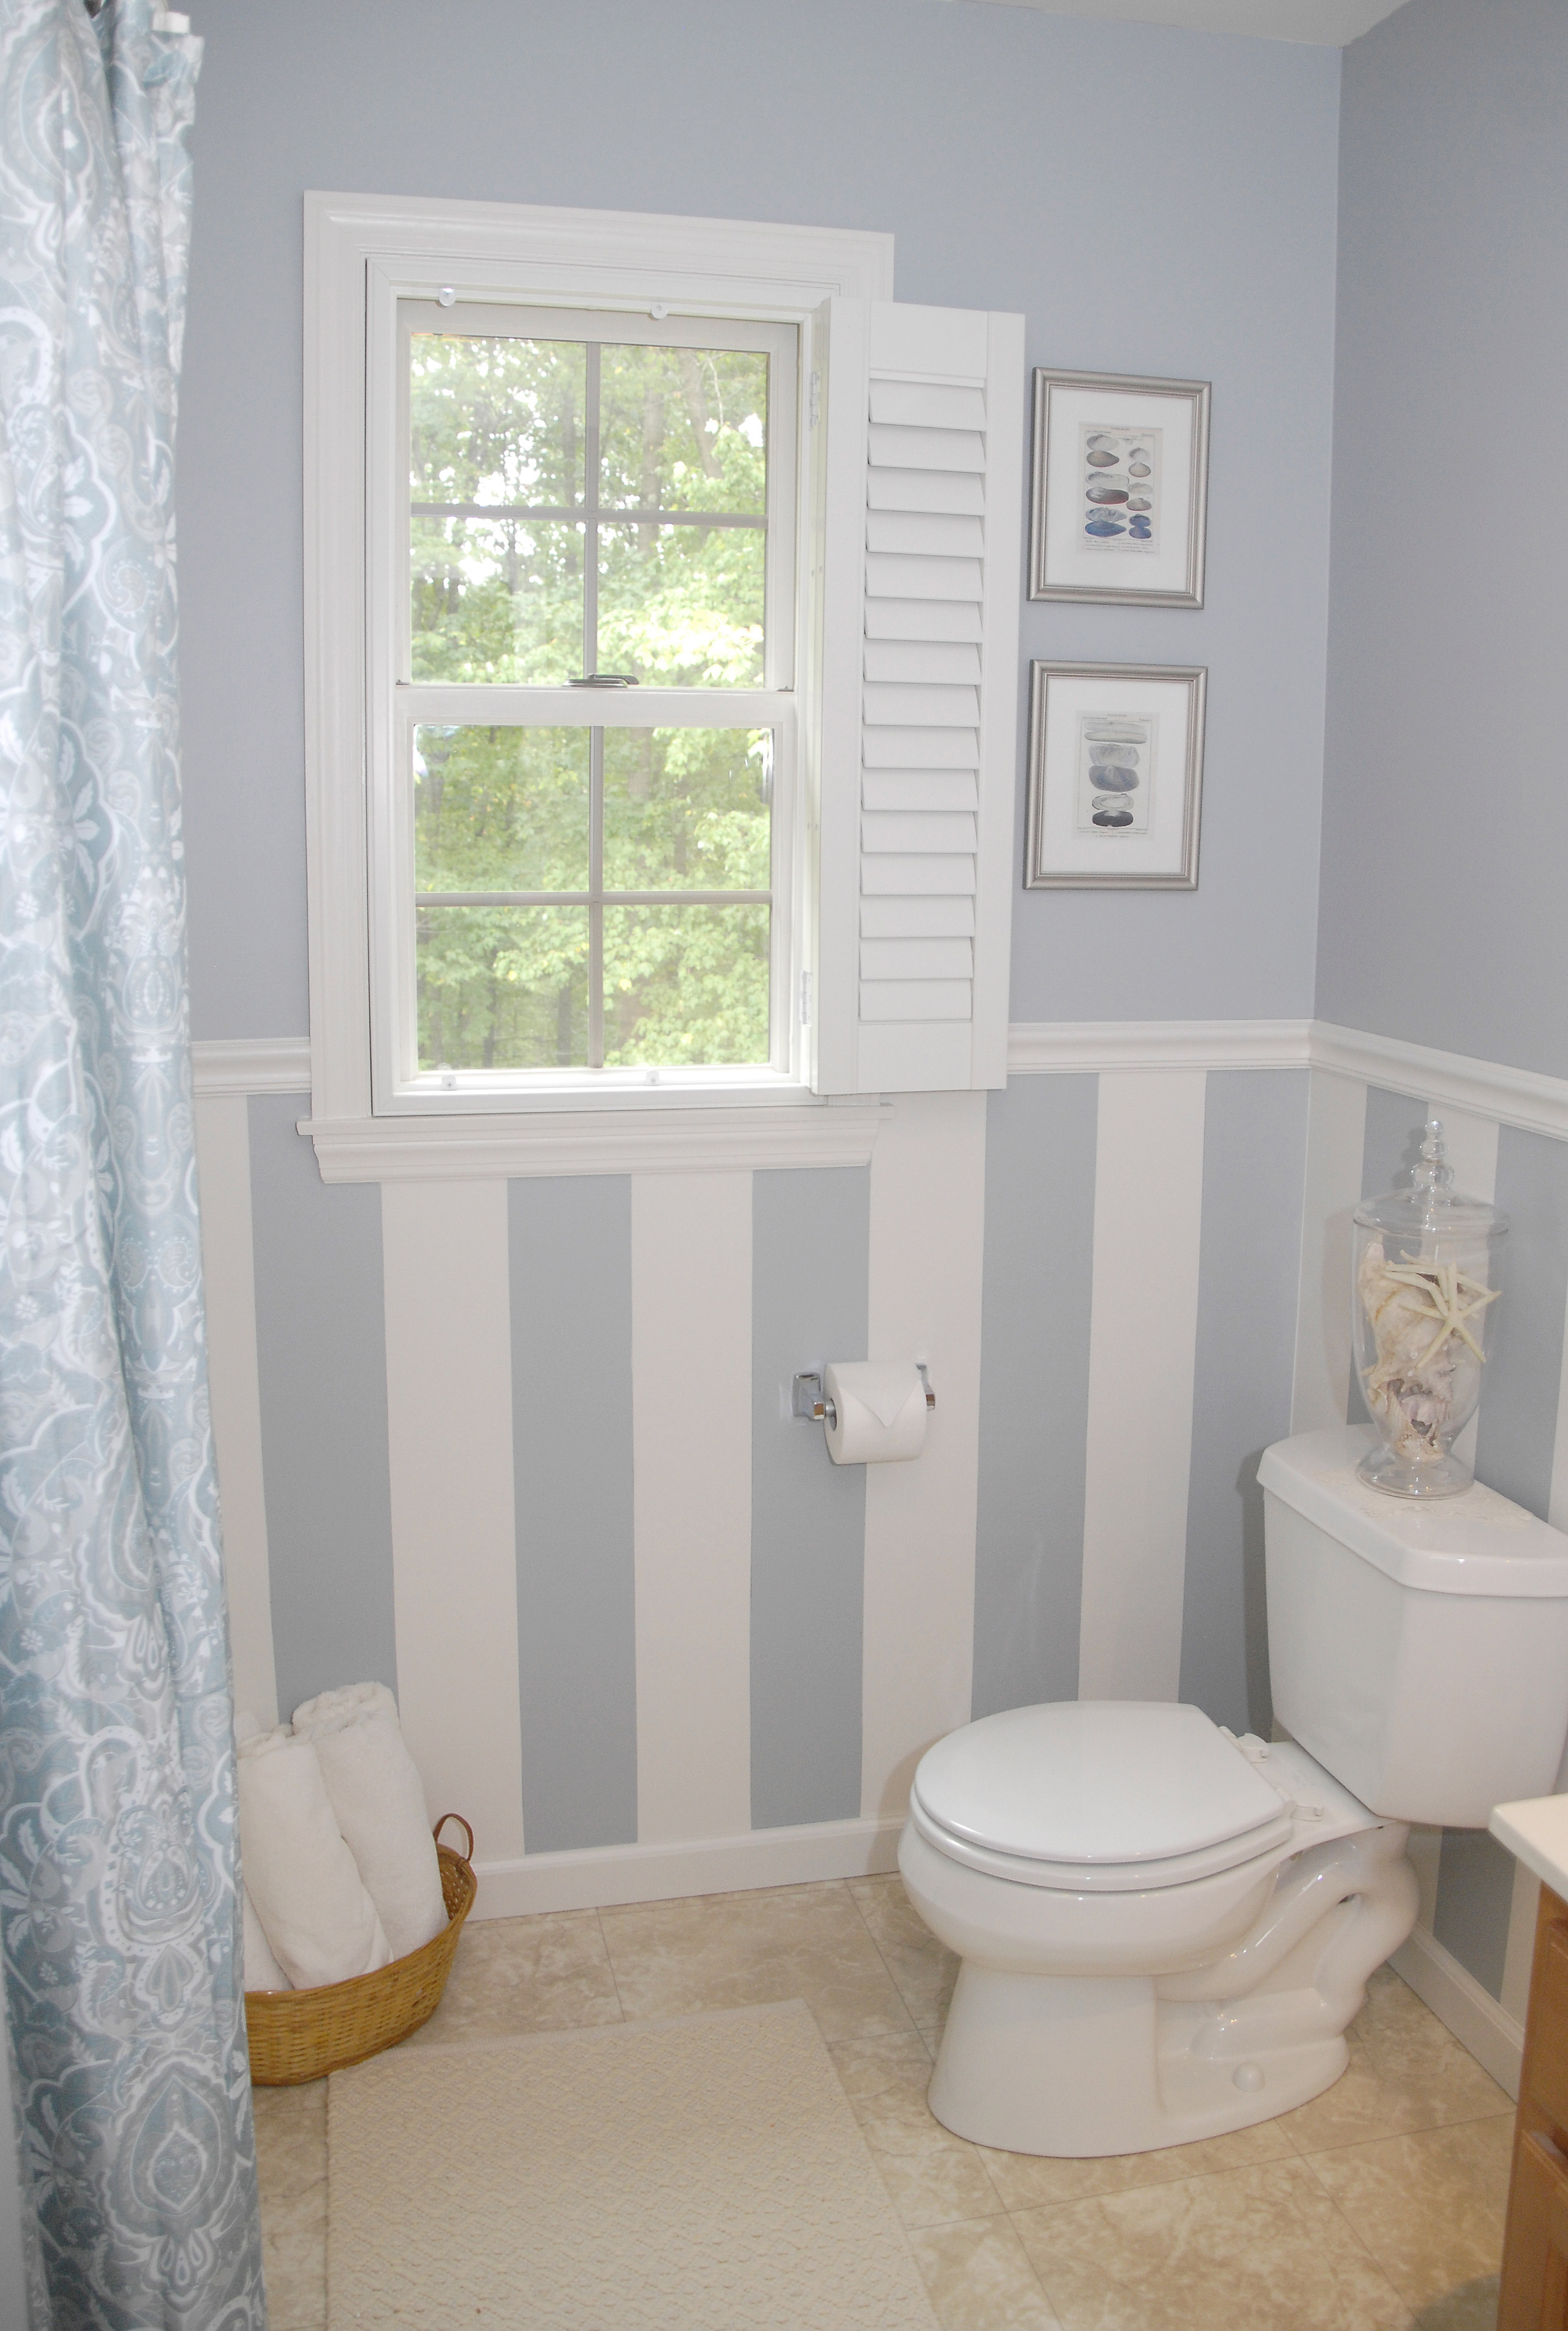 88 bathroom makeover plus a droolworthy DIY window treatment  Living Rich on LessLiving